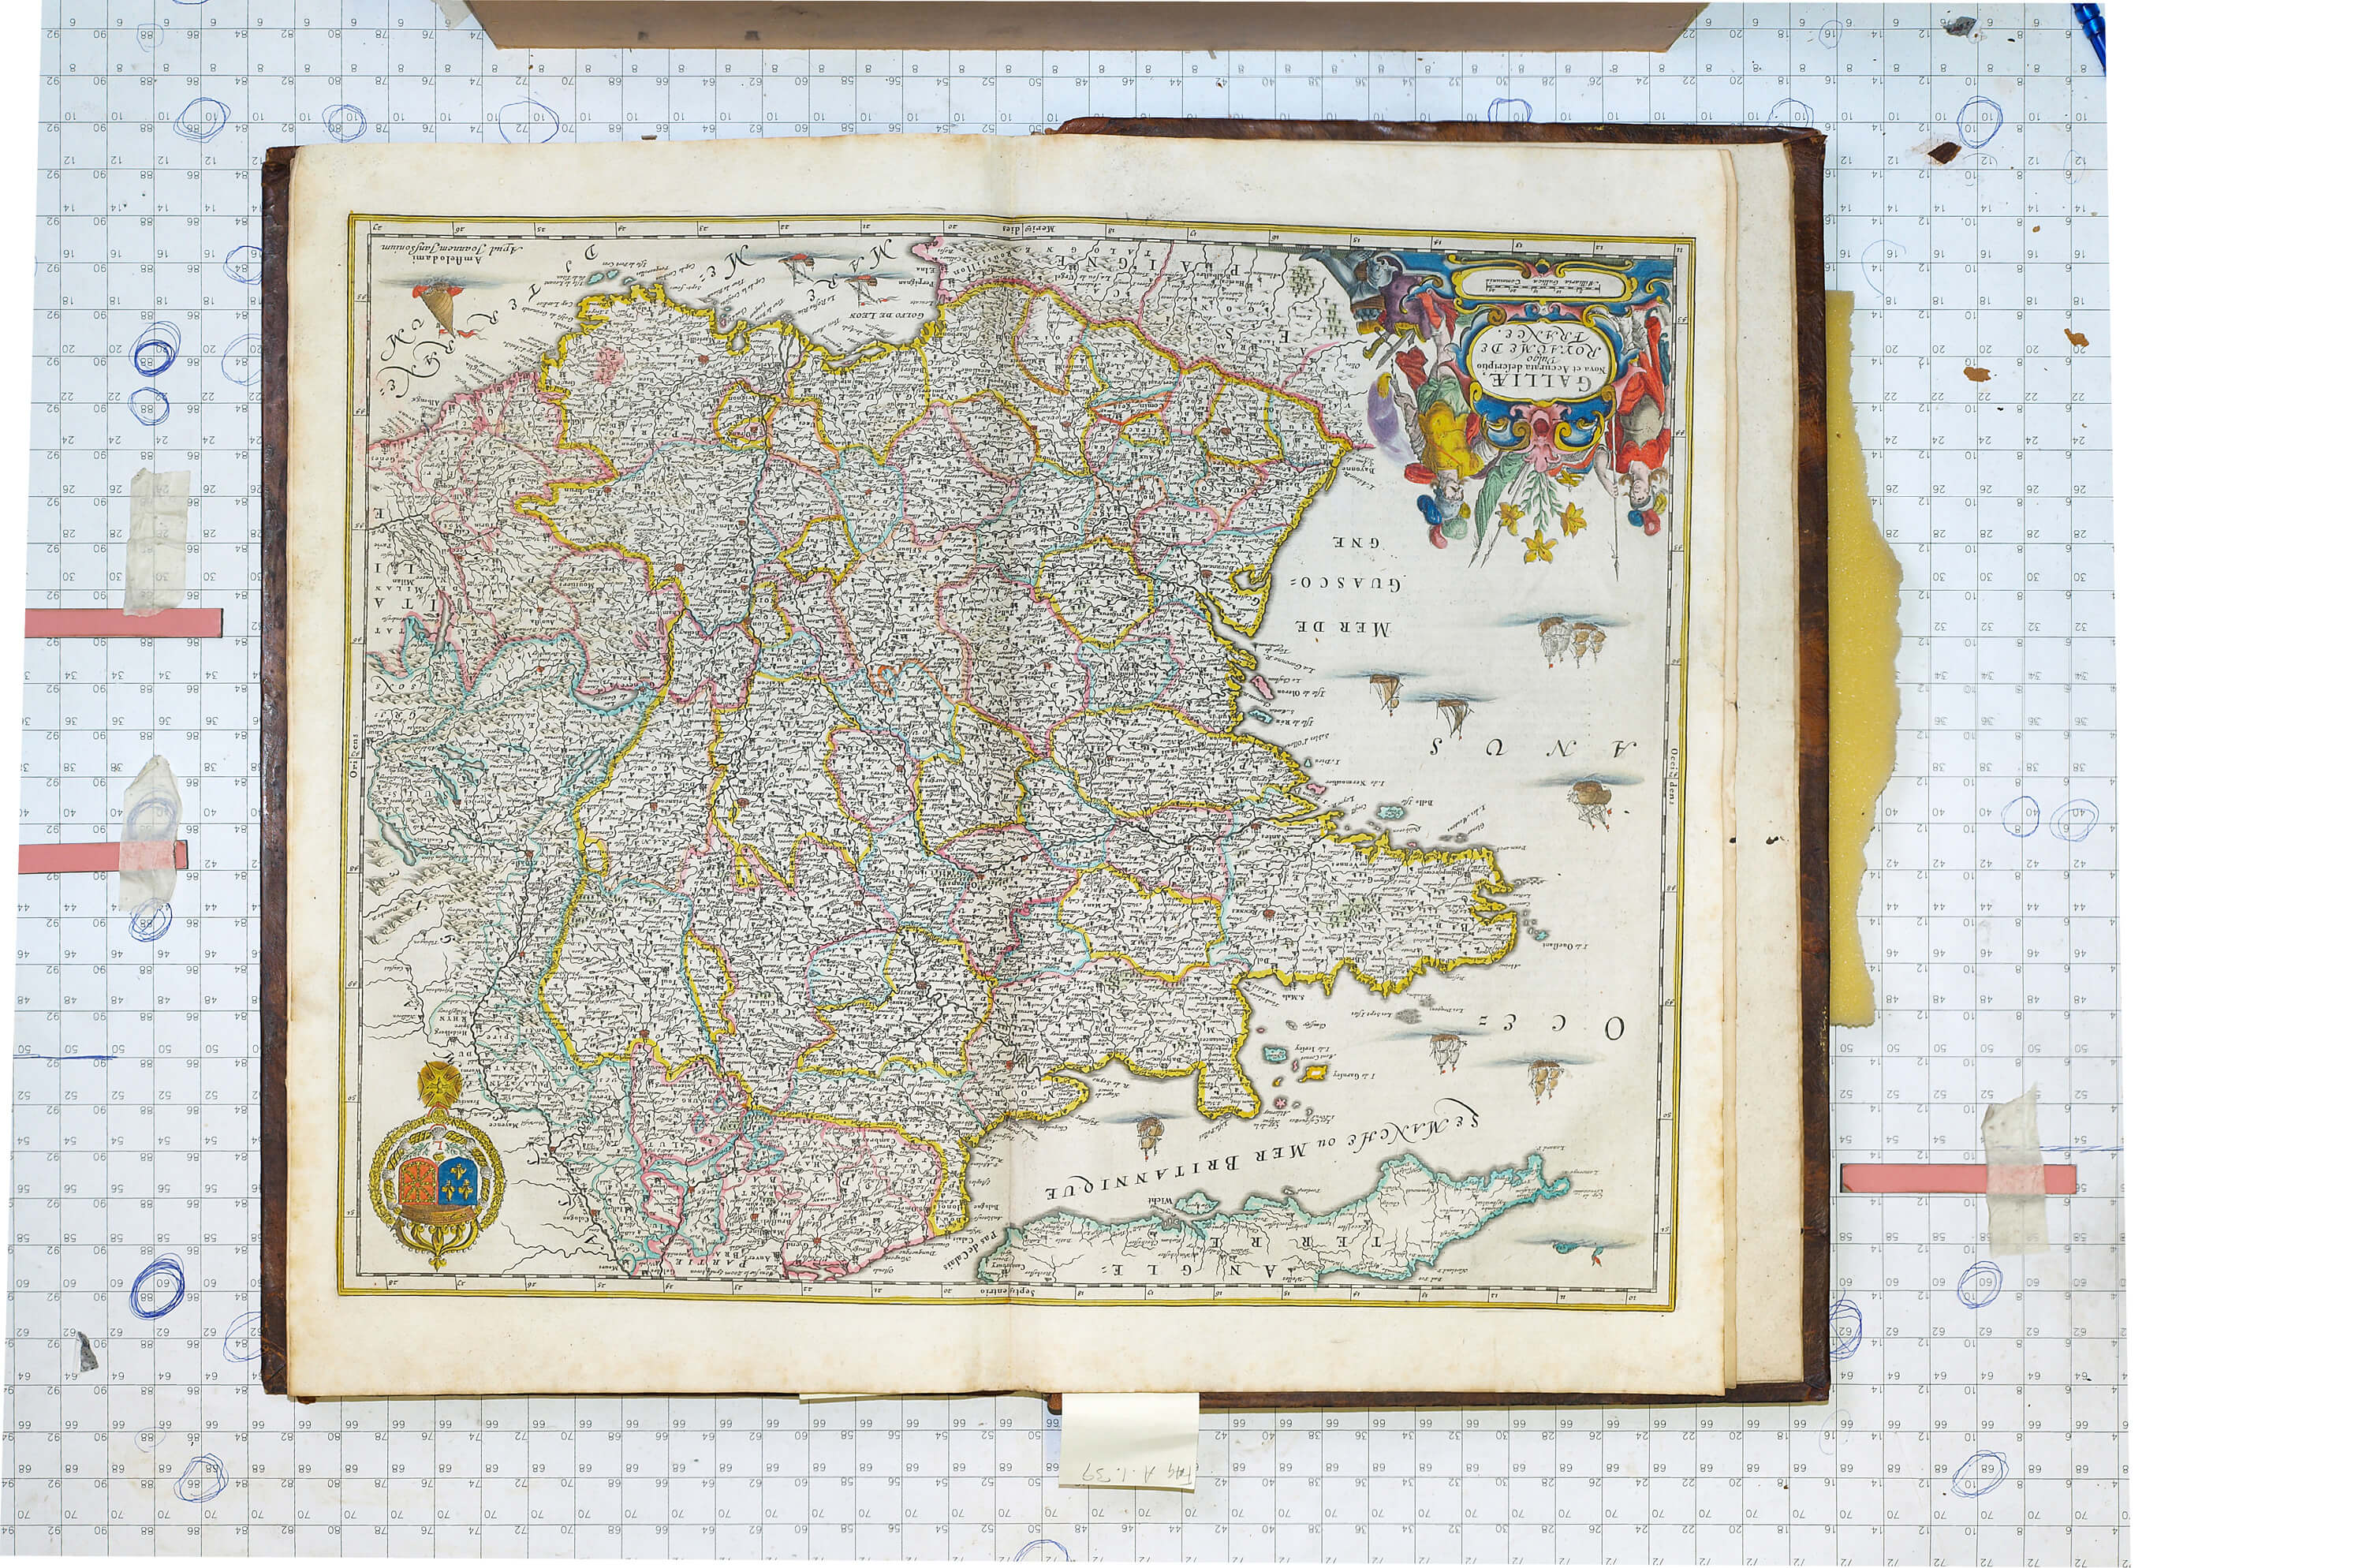 World atlas vol 2 johannes jansson 1666 a 1 39 l brown collection a 1 39 1 france gumiabroncs Images